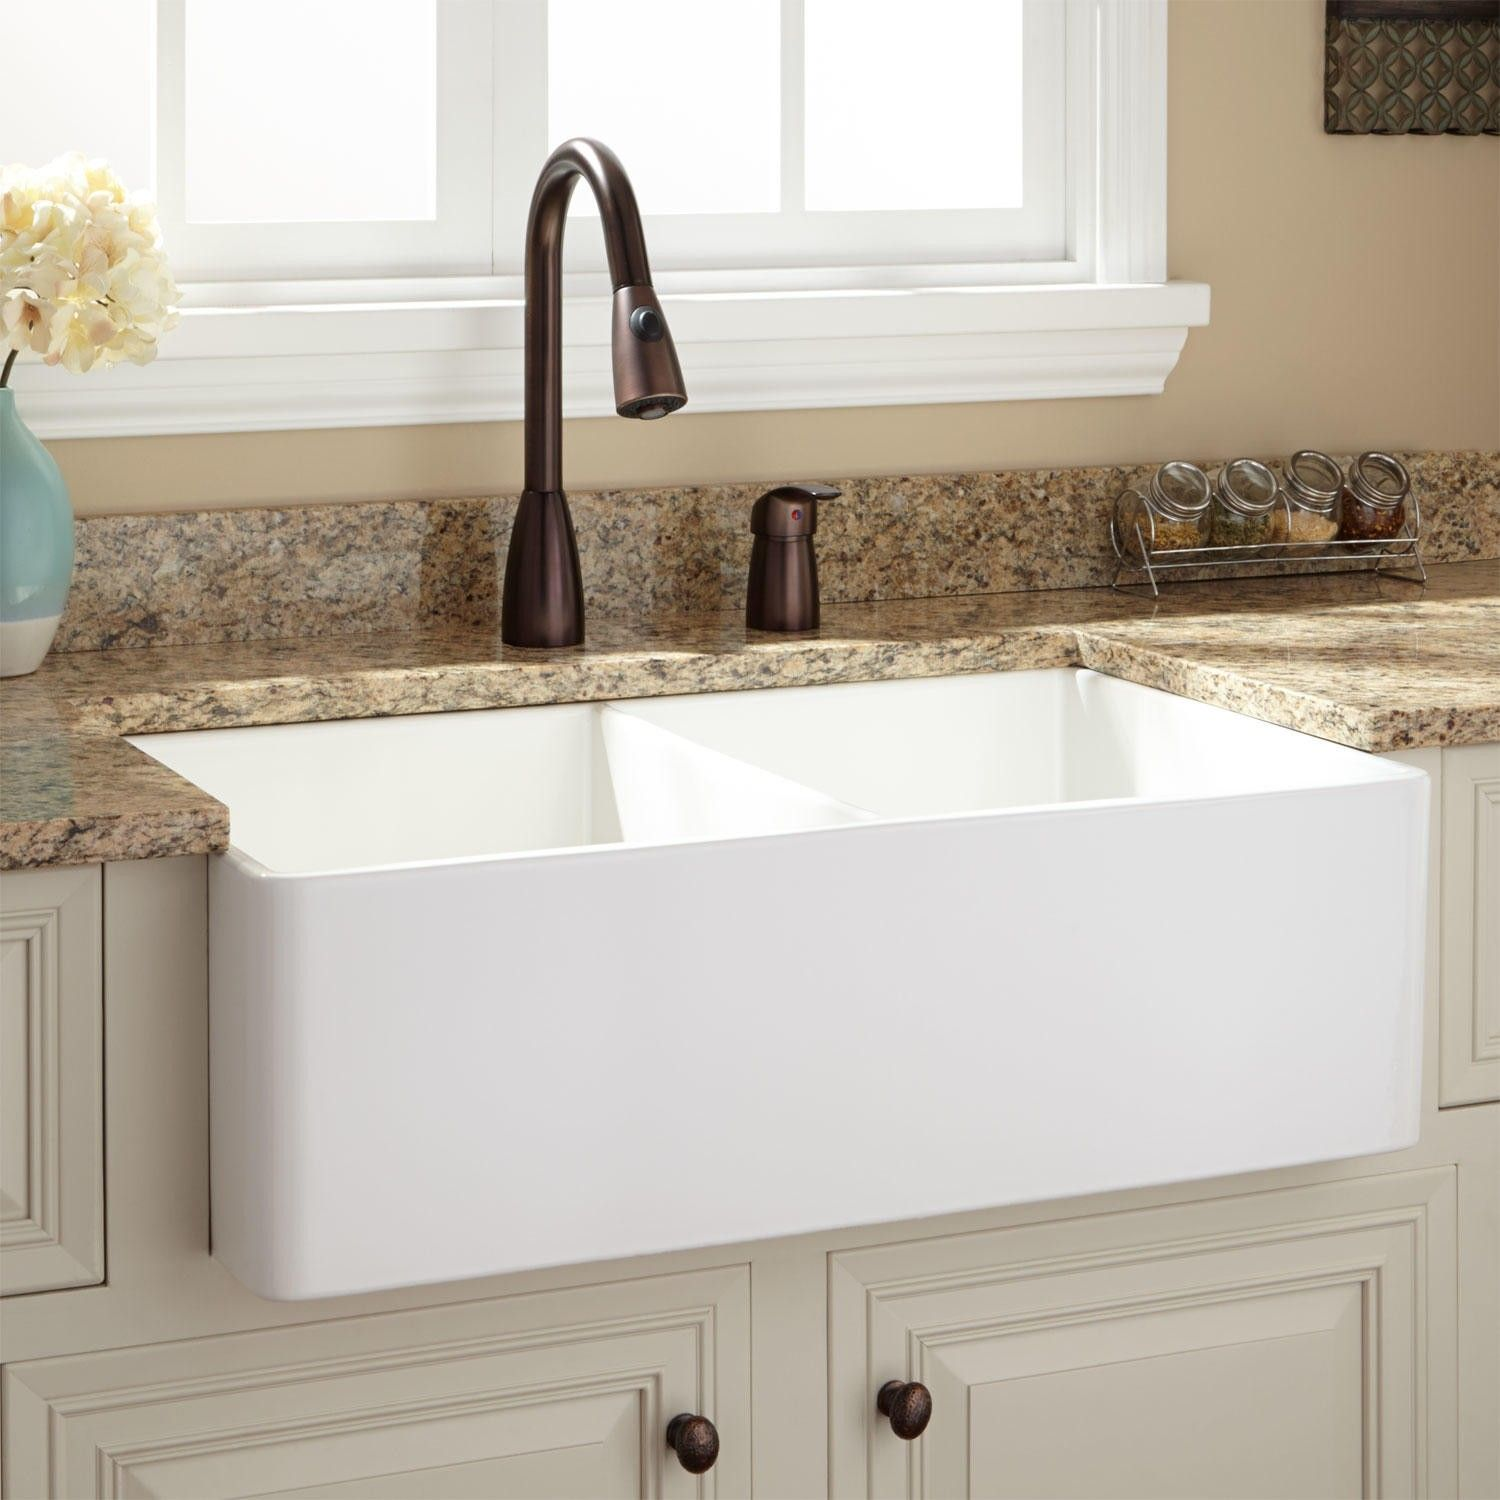 "White Kitchen Farm Sink 33"" baldwin double-bowl fireclay farmhouse sink - smooth apron"